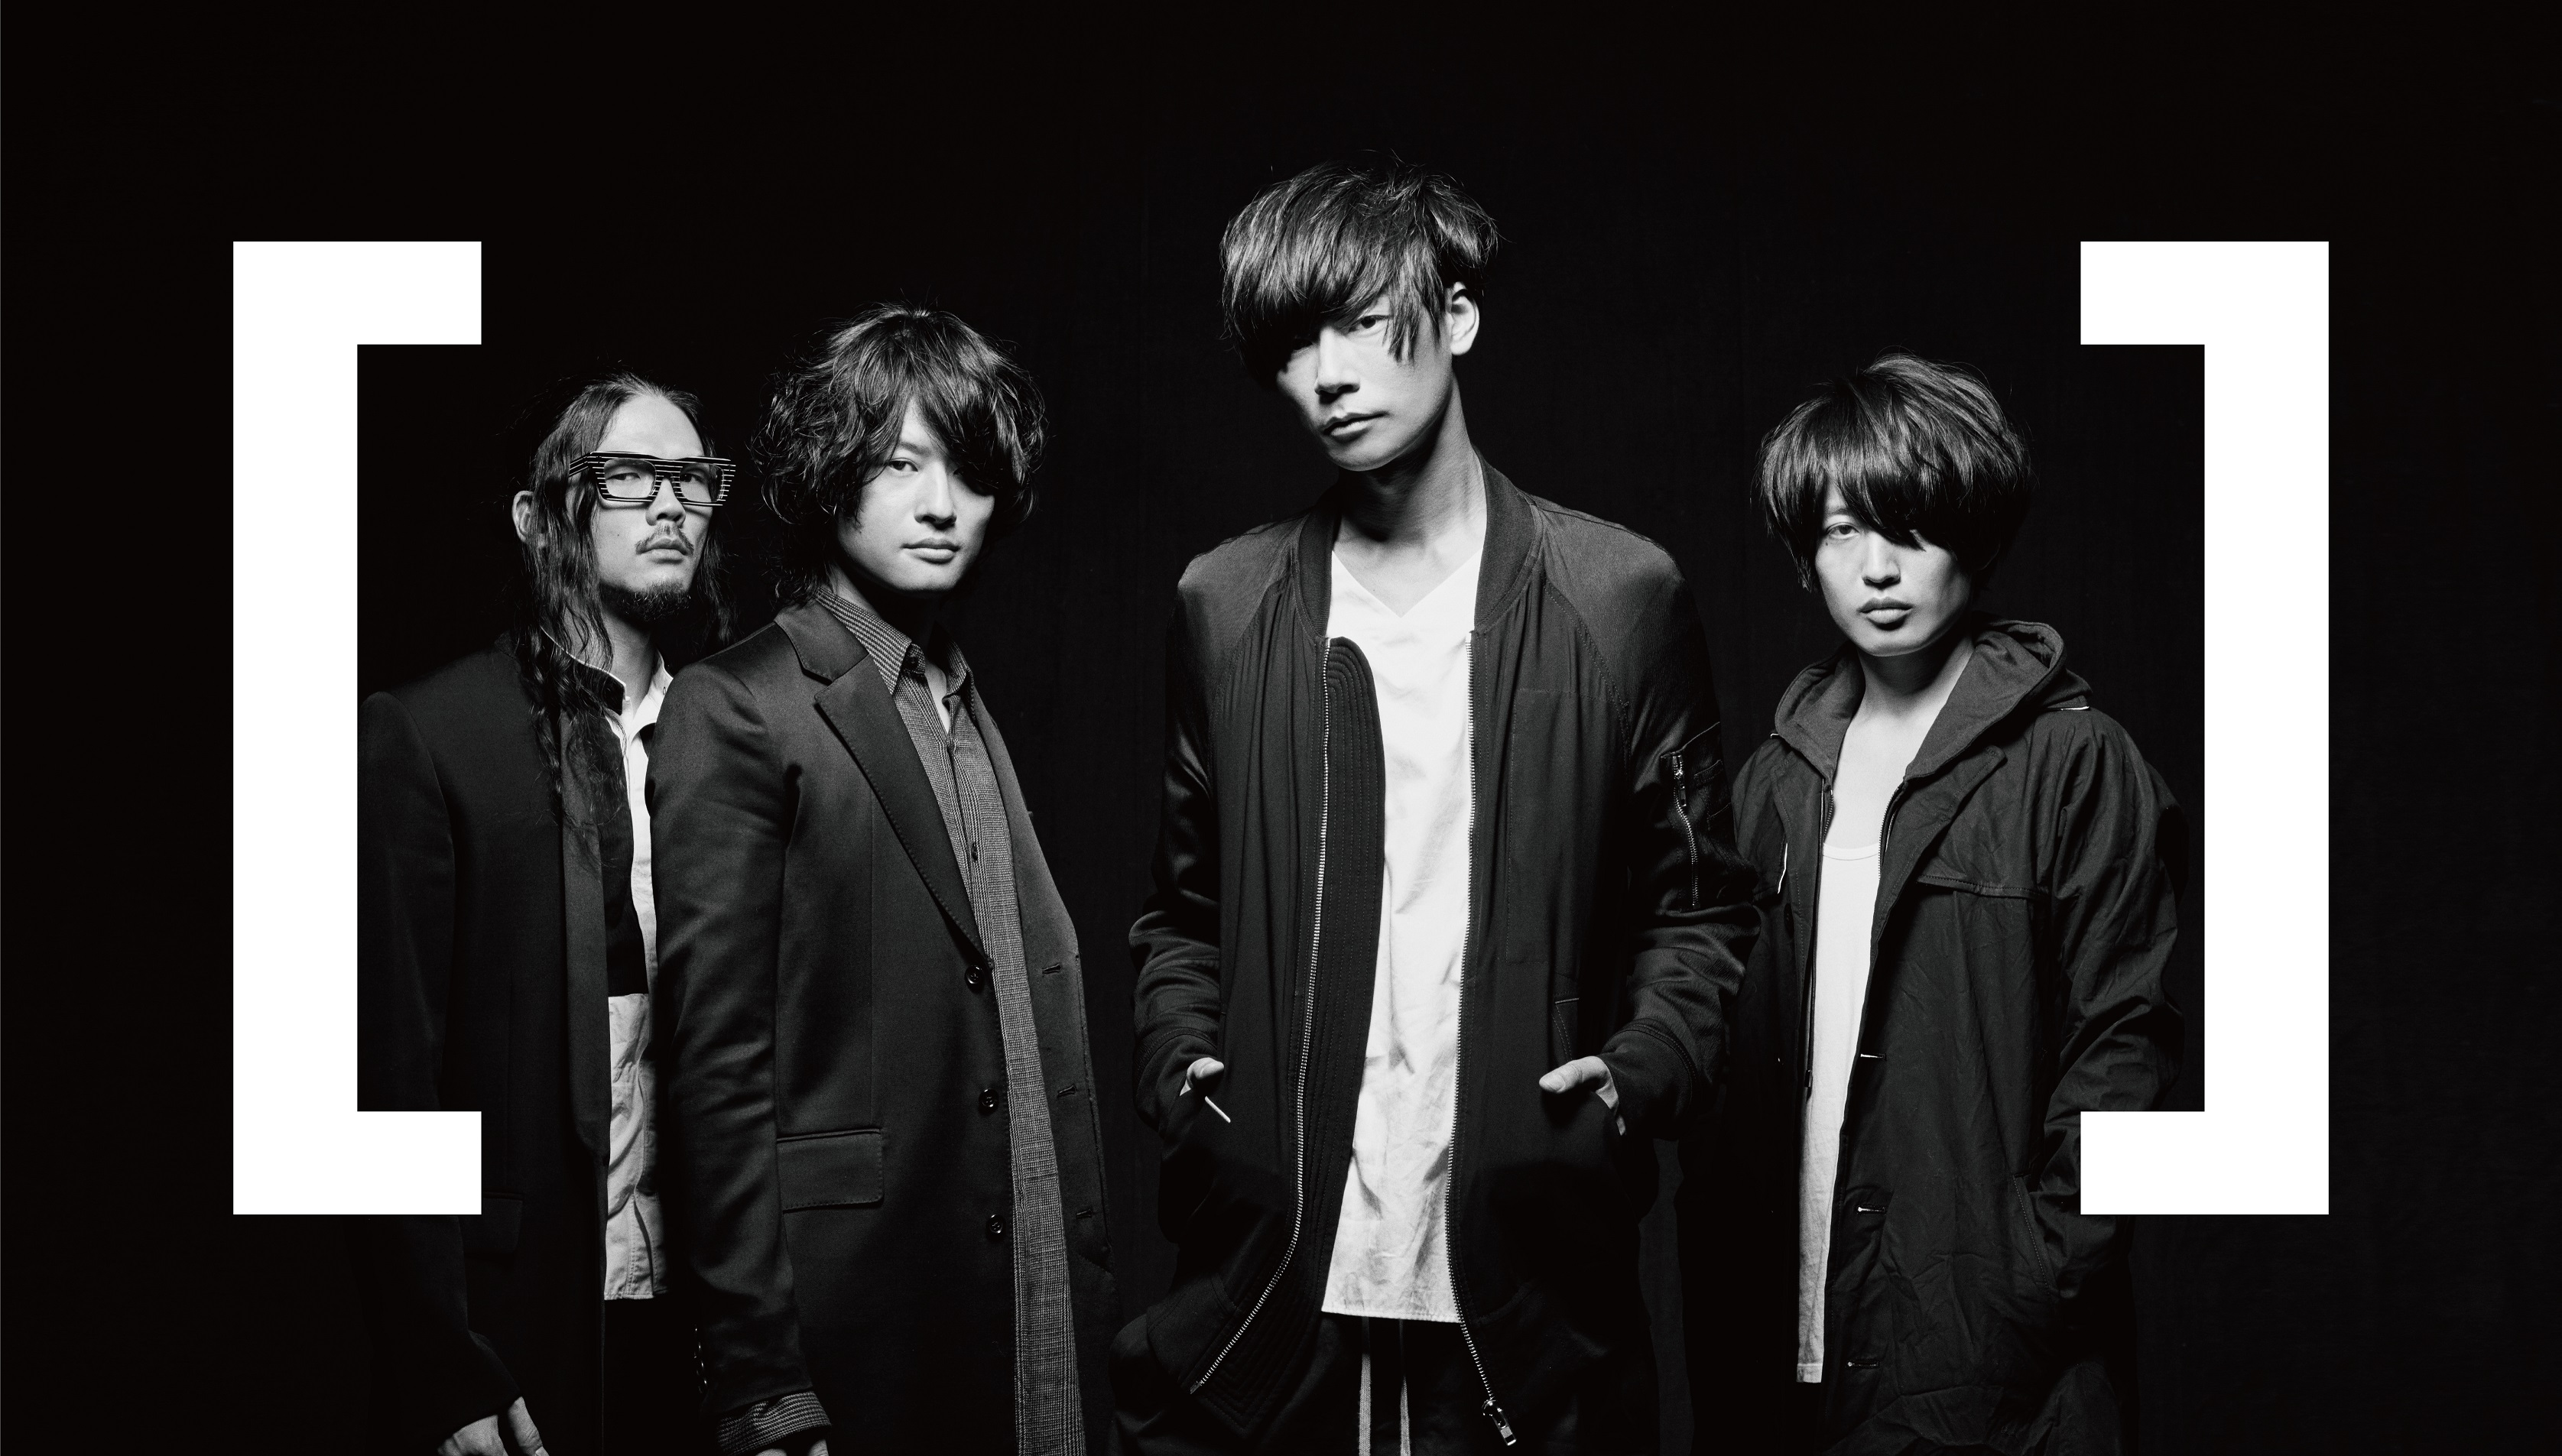 [Alexandros] set to take SXSW by storm with two power packed showcases